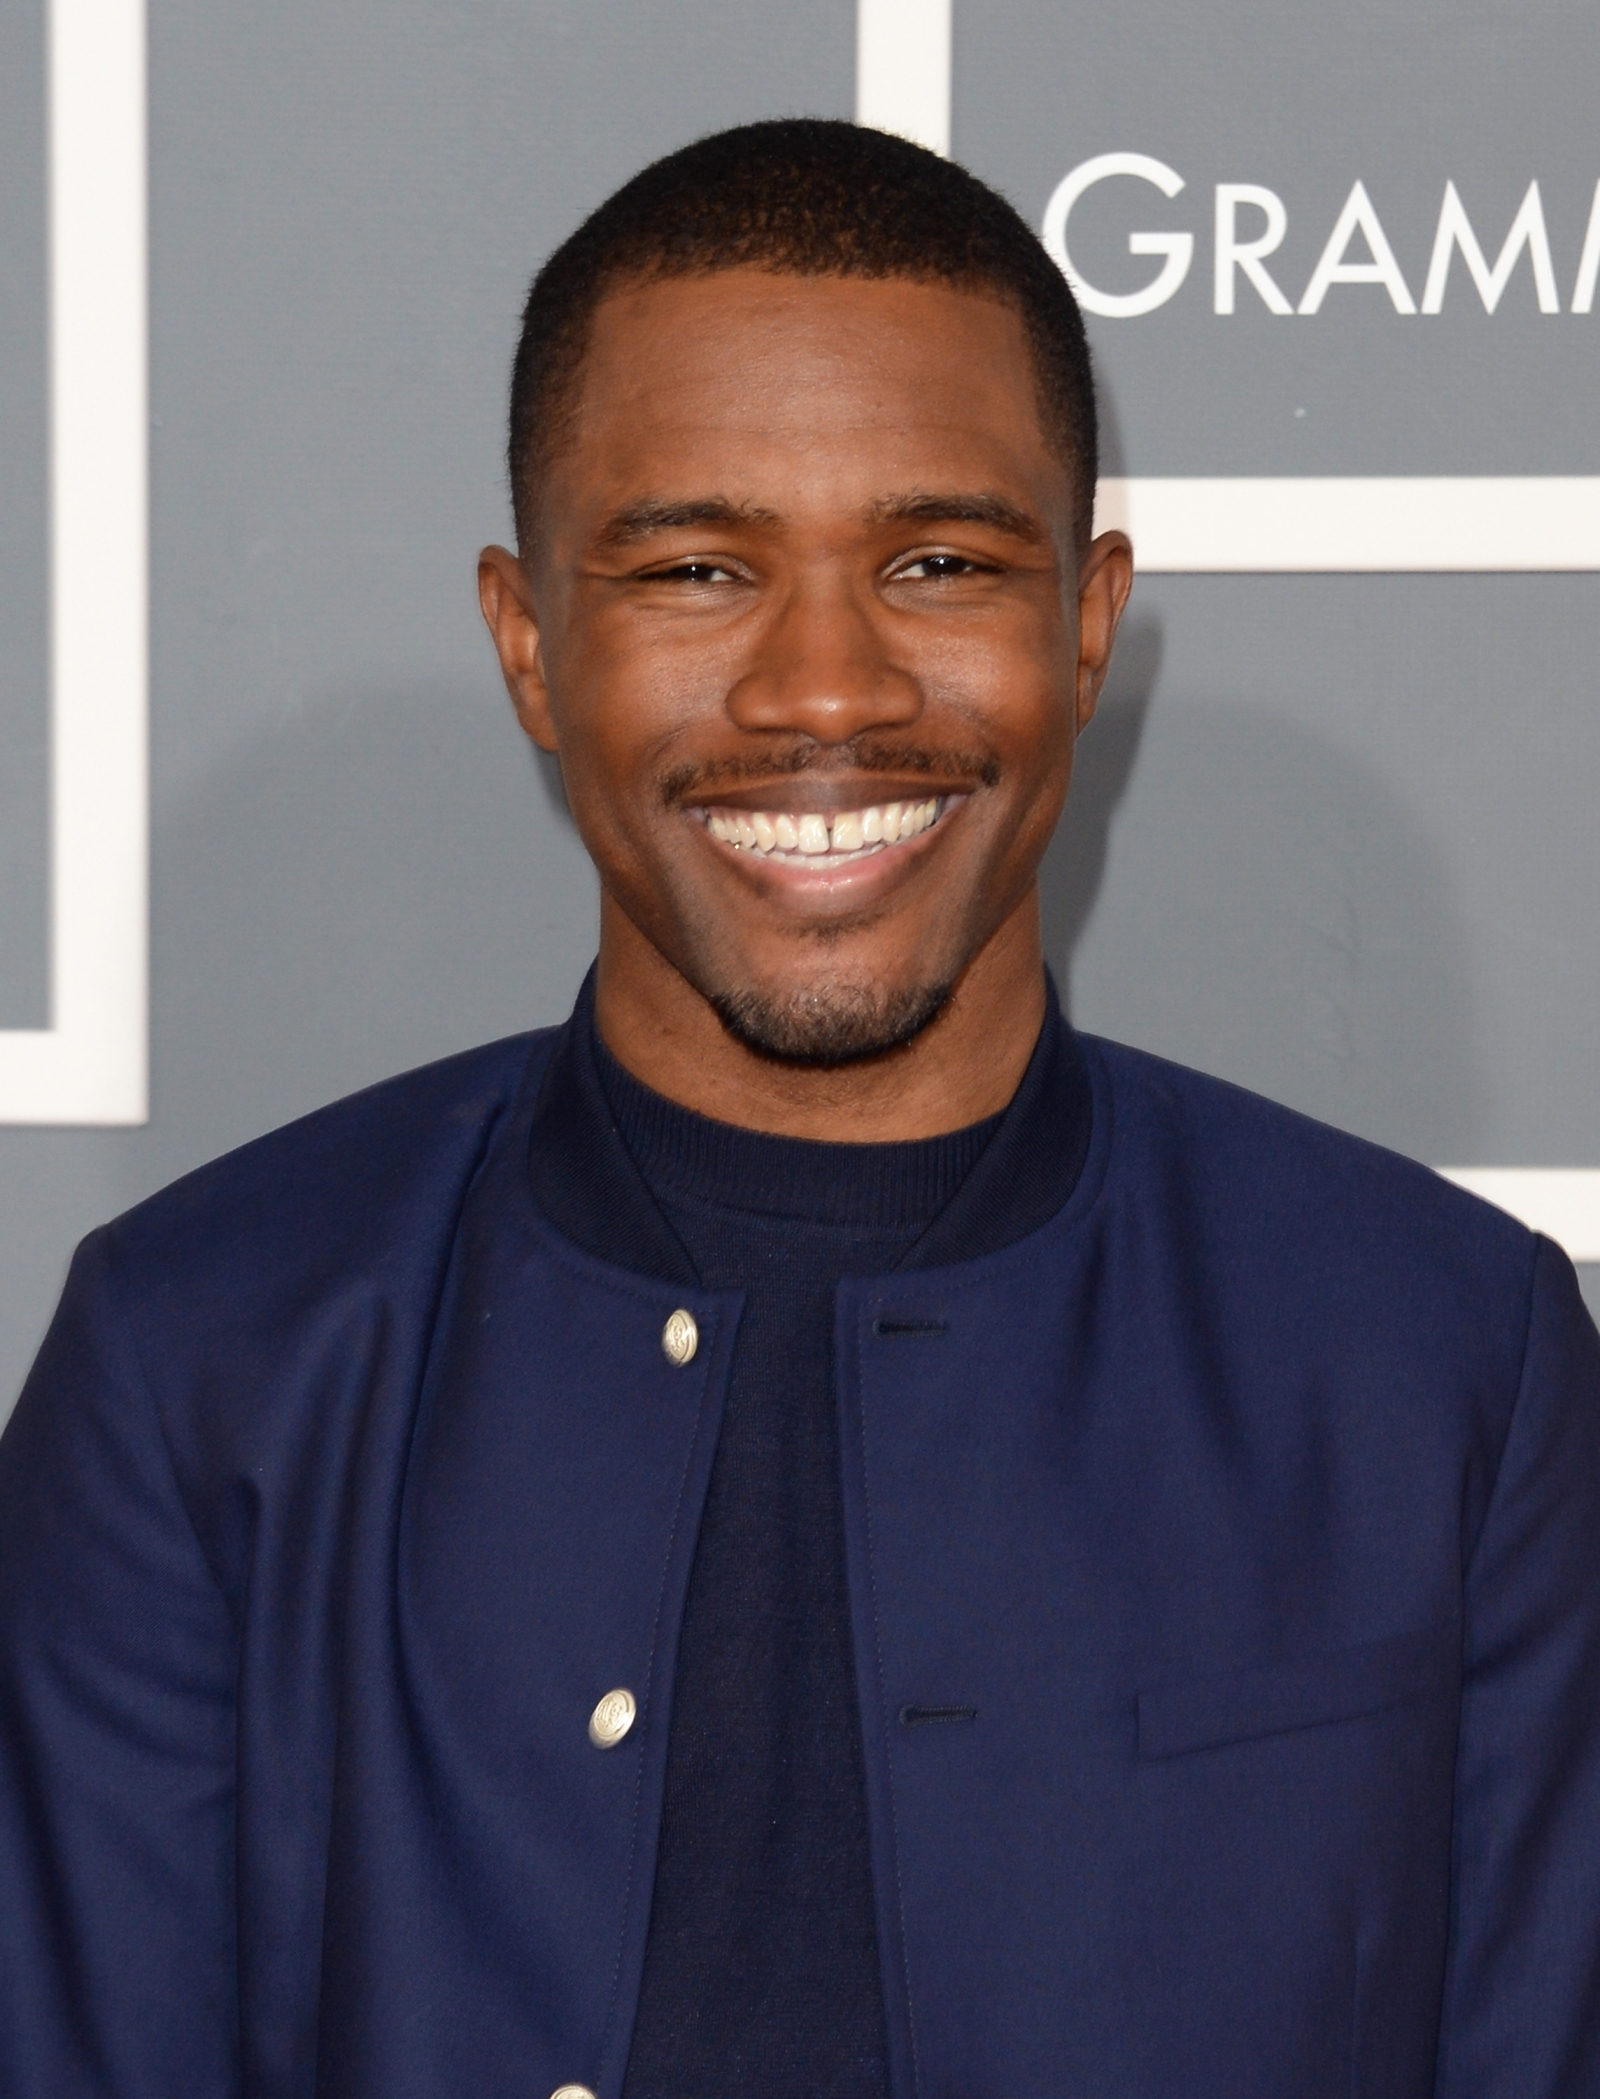 Frank ocean 39 s blonde album to debut at number one in uk charts for Www frank